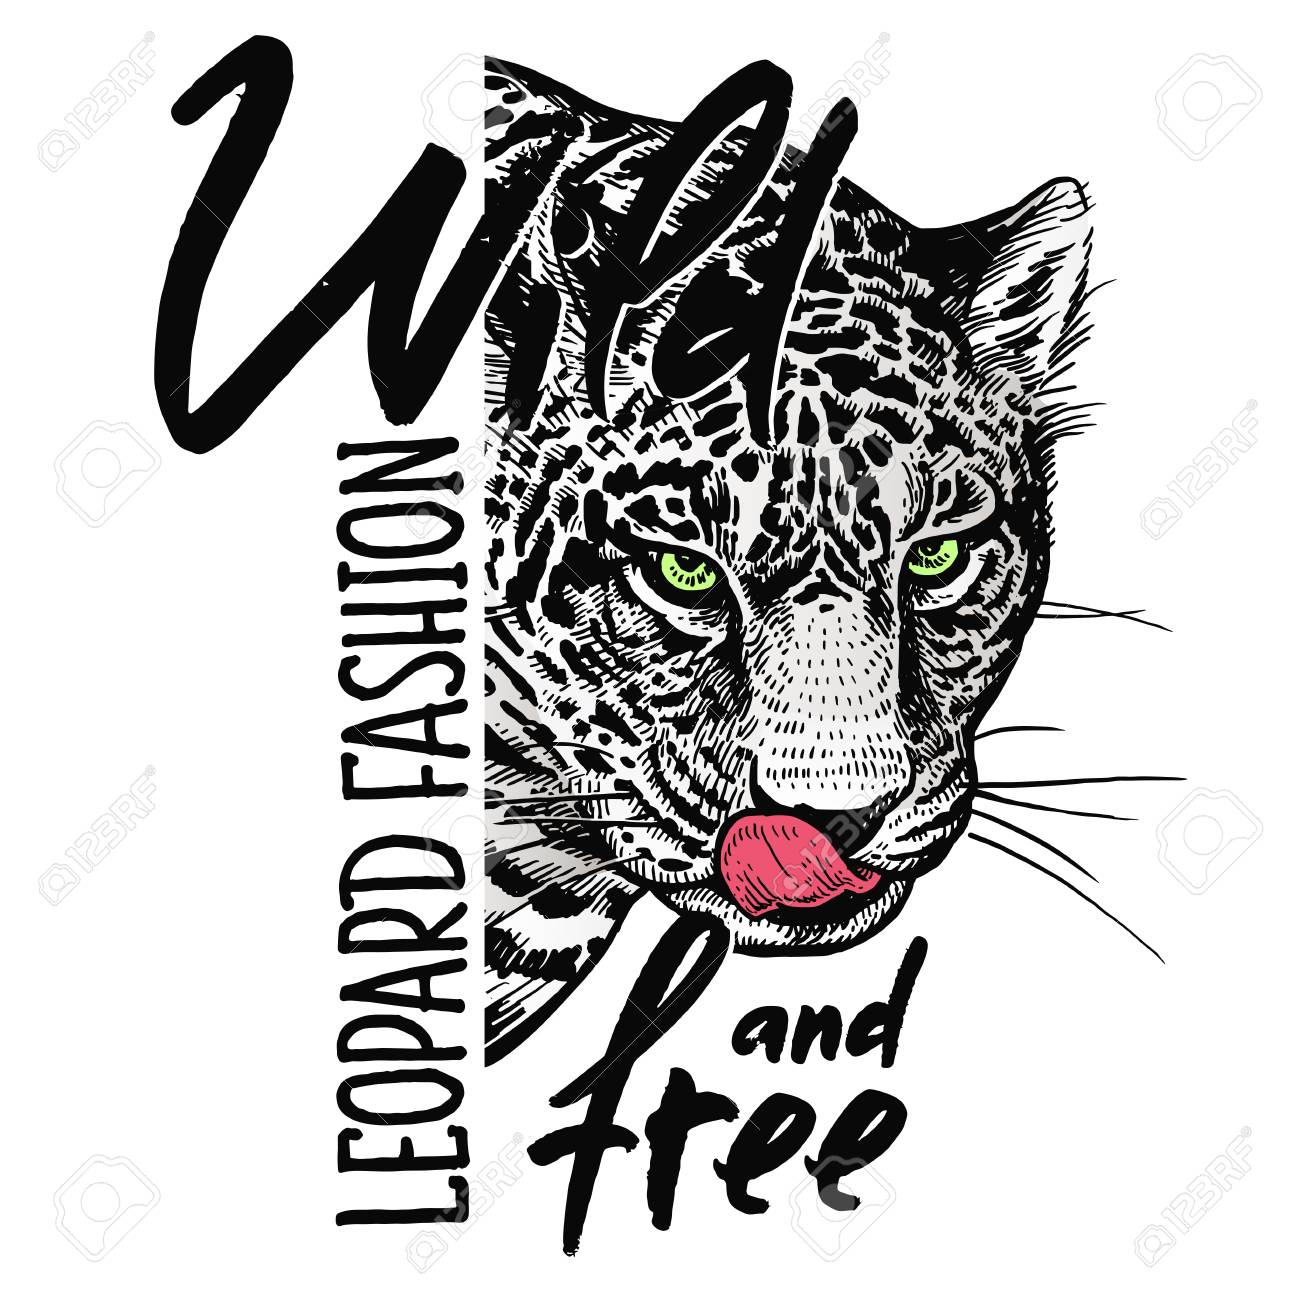 """Muzzle of leopard close-up, skull and inscription """"Wild and free"""". Template for printing on T-shirts, posters, cards. Black, white and red color. Realistic sketch. Beast style. - 122553405"""